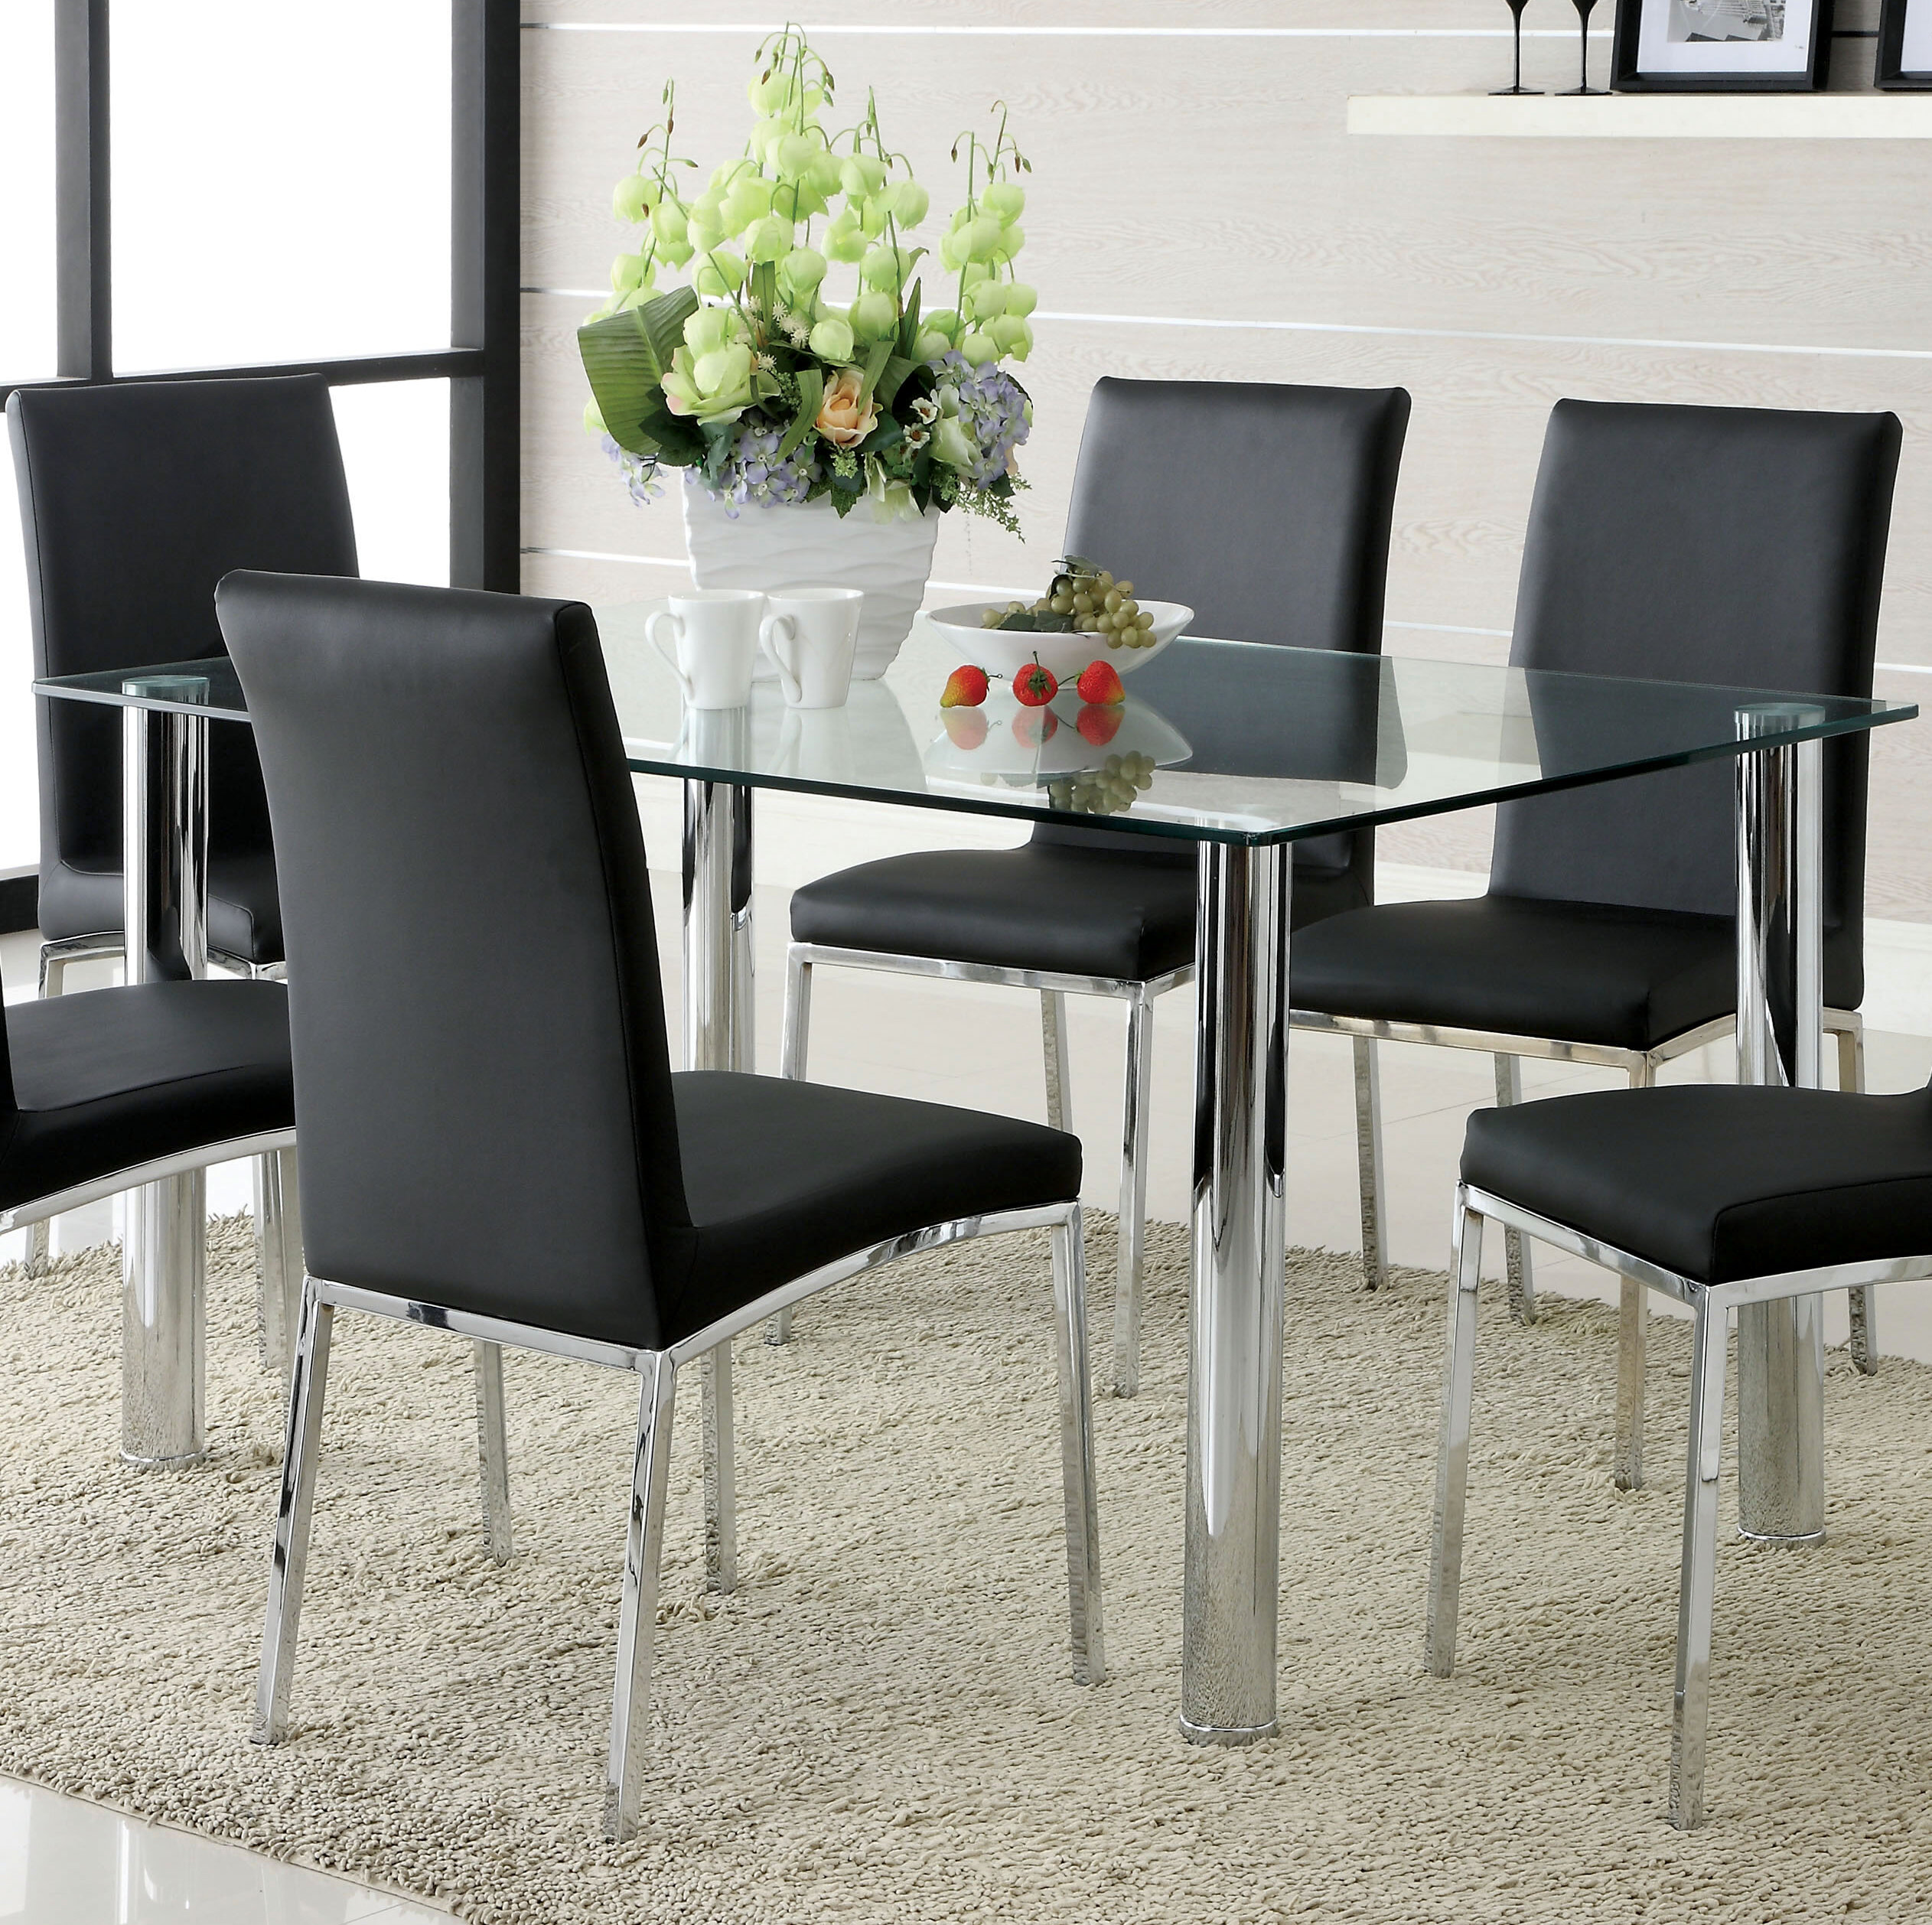 Picture of: Glass Rectangular Kitchen Dining Tables You Ll Love In 2020 Wayfair